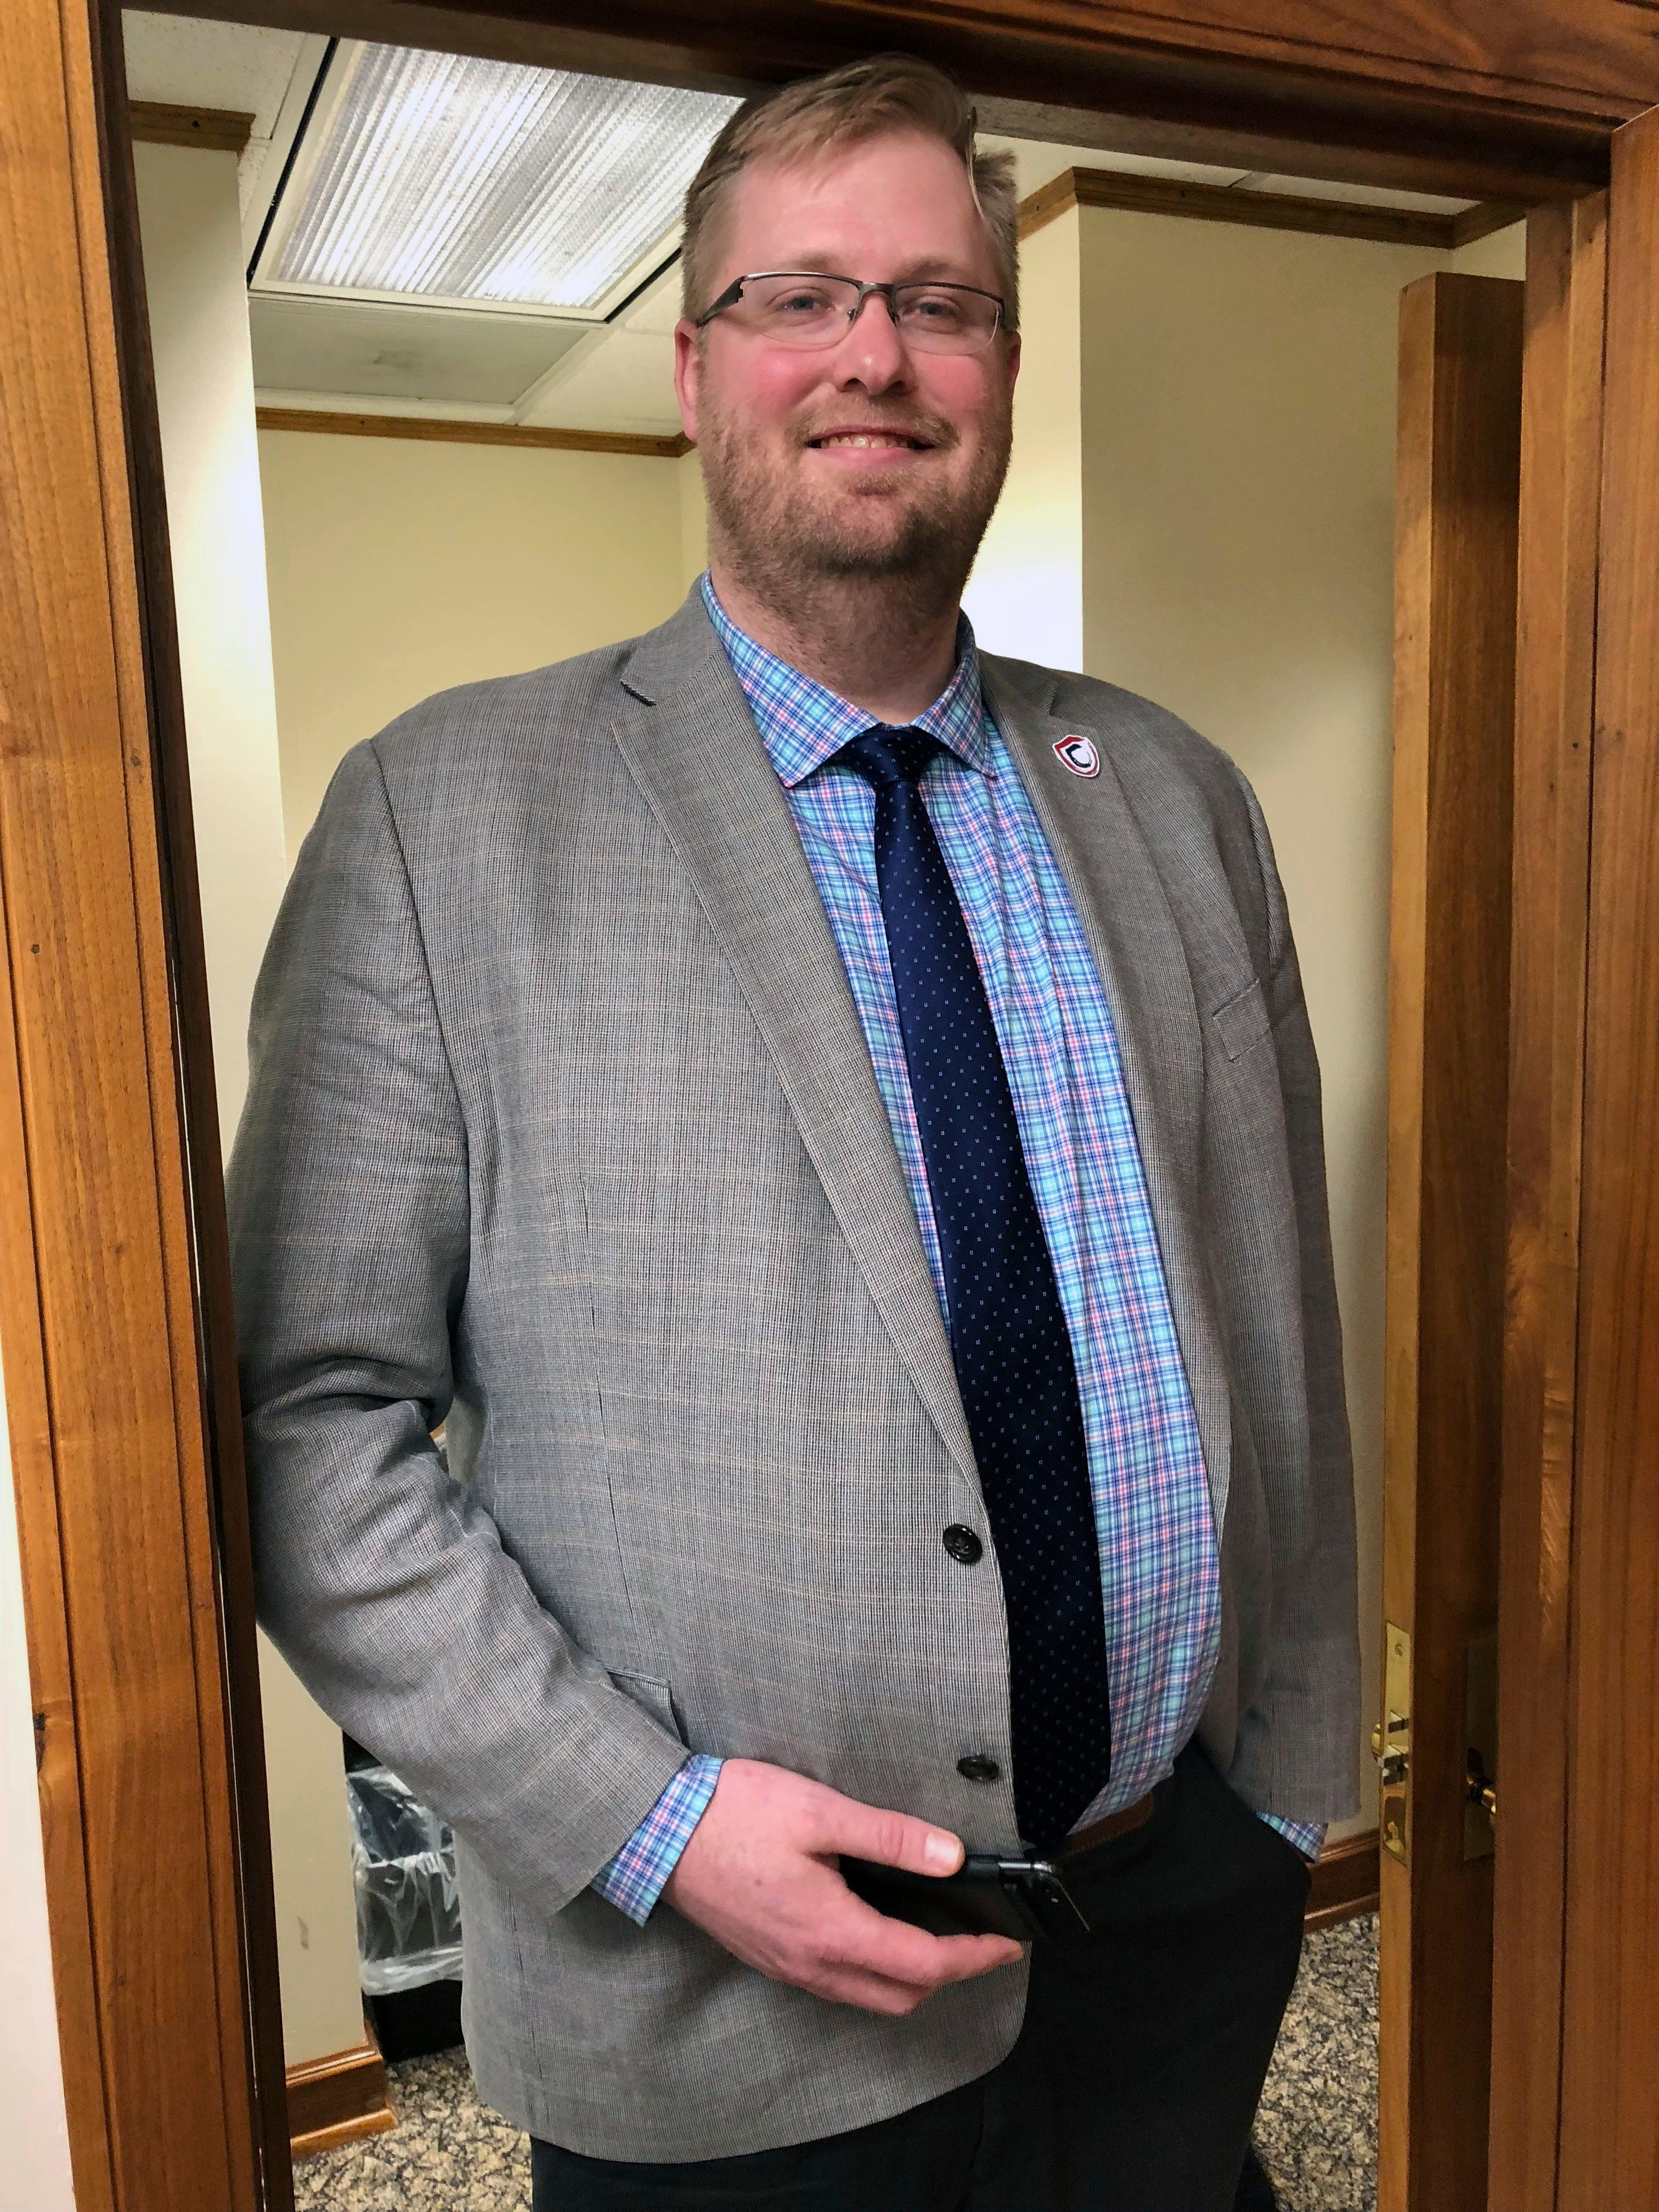 North Dakota's insurance commissioner, Jon Godfread, has stepped forward to say he will contest the title.